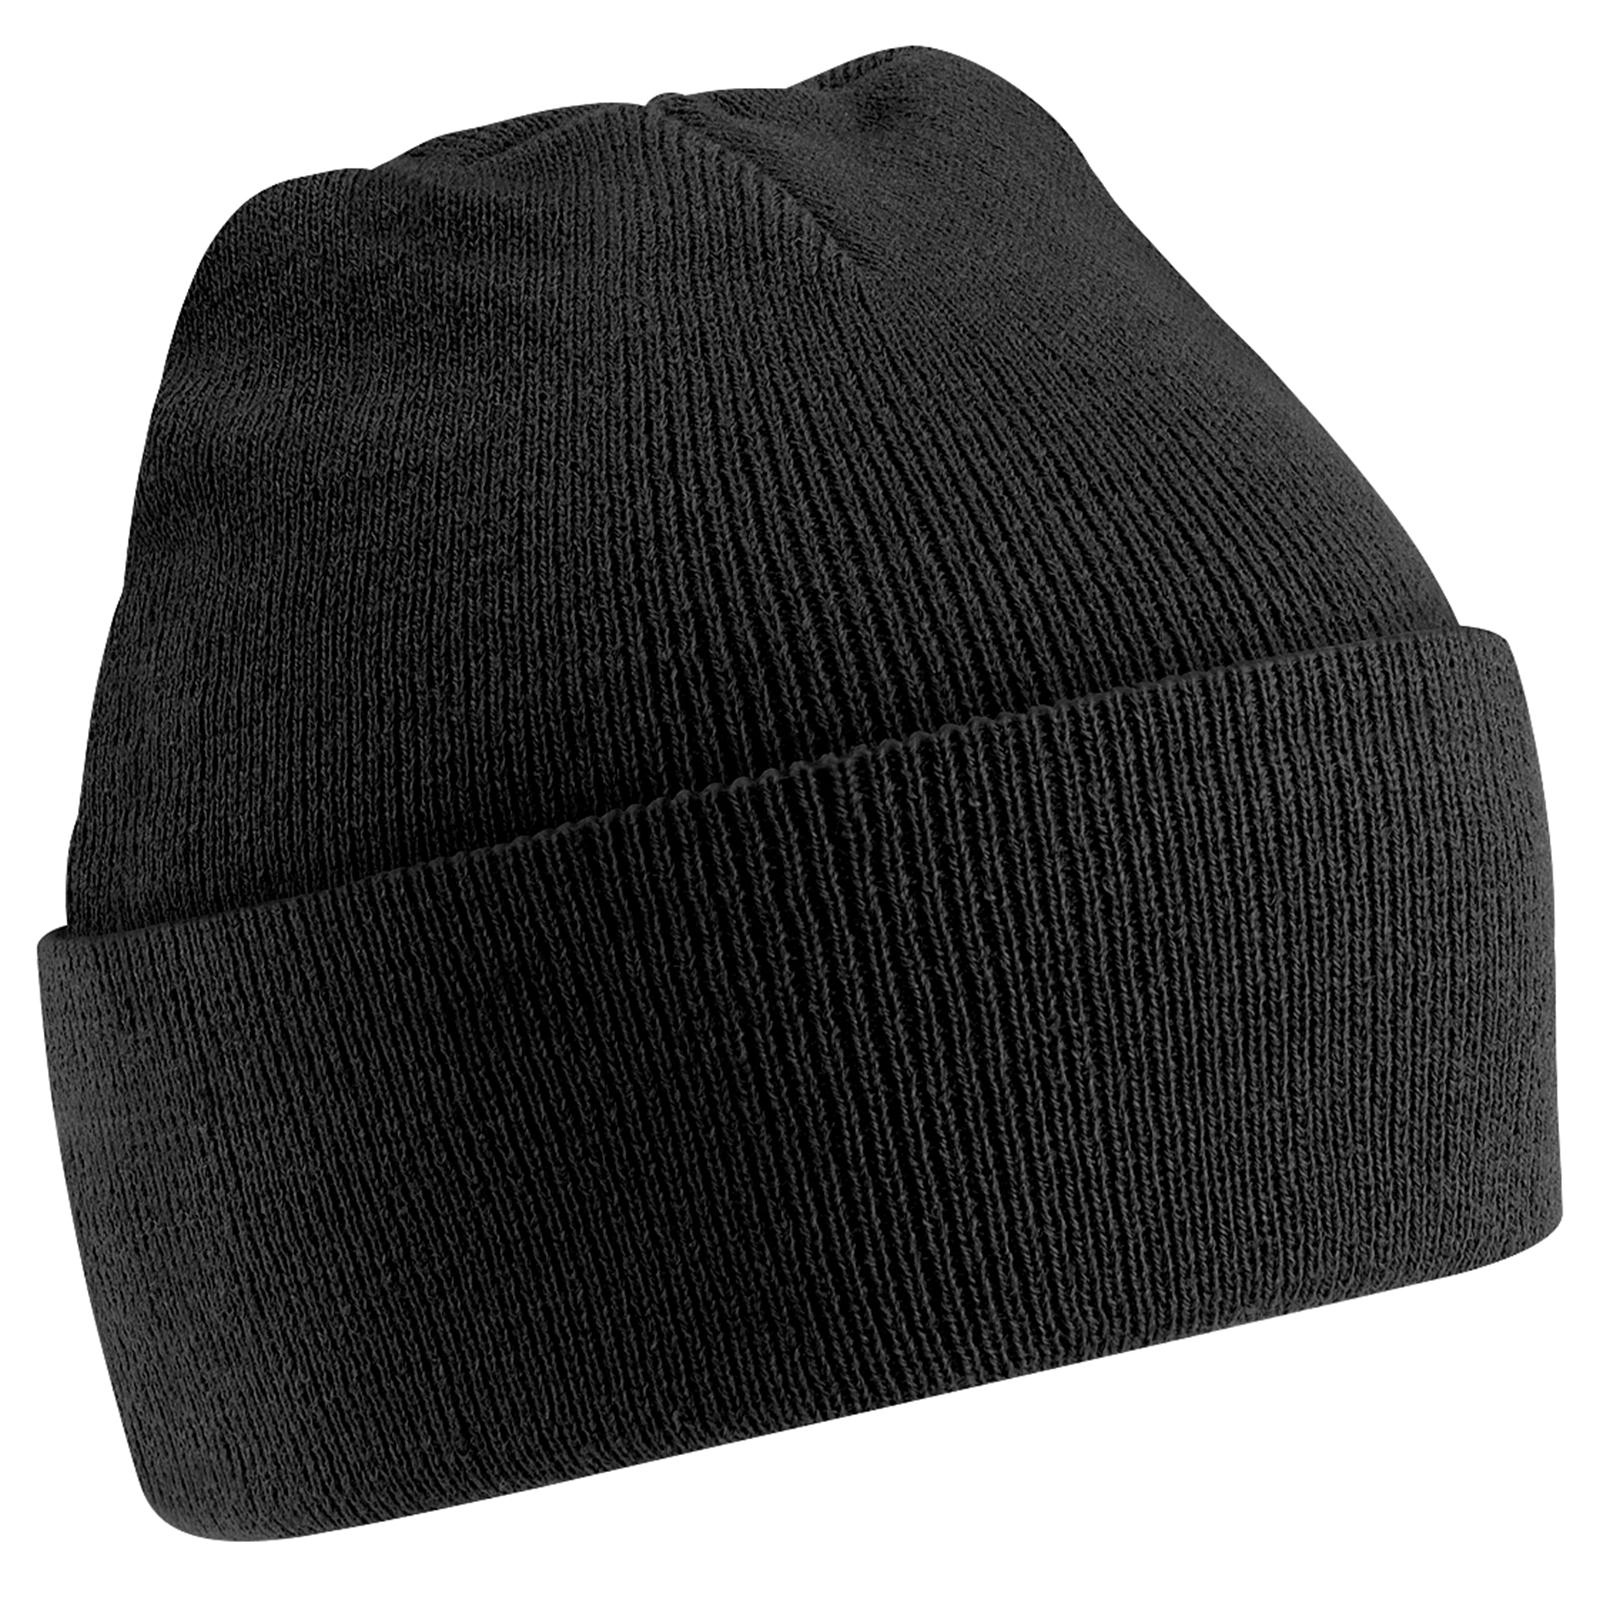 Stay Warm and Show Off Your Style with Men's Novelty Beanies and Knit Hats. Whether you're using men's novelty beanies and knit hats to cover a bad hair day or to protect your head from wind and cold, a hat is a stylish addition to any outfit.